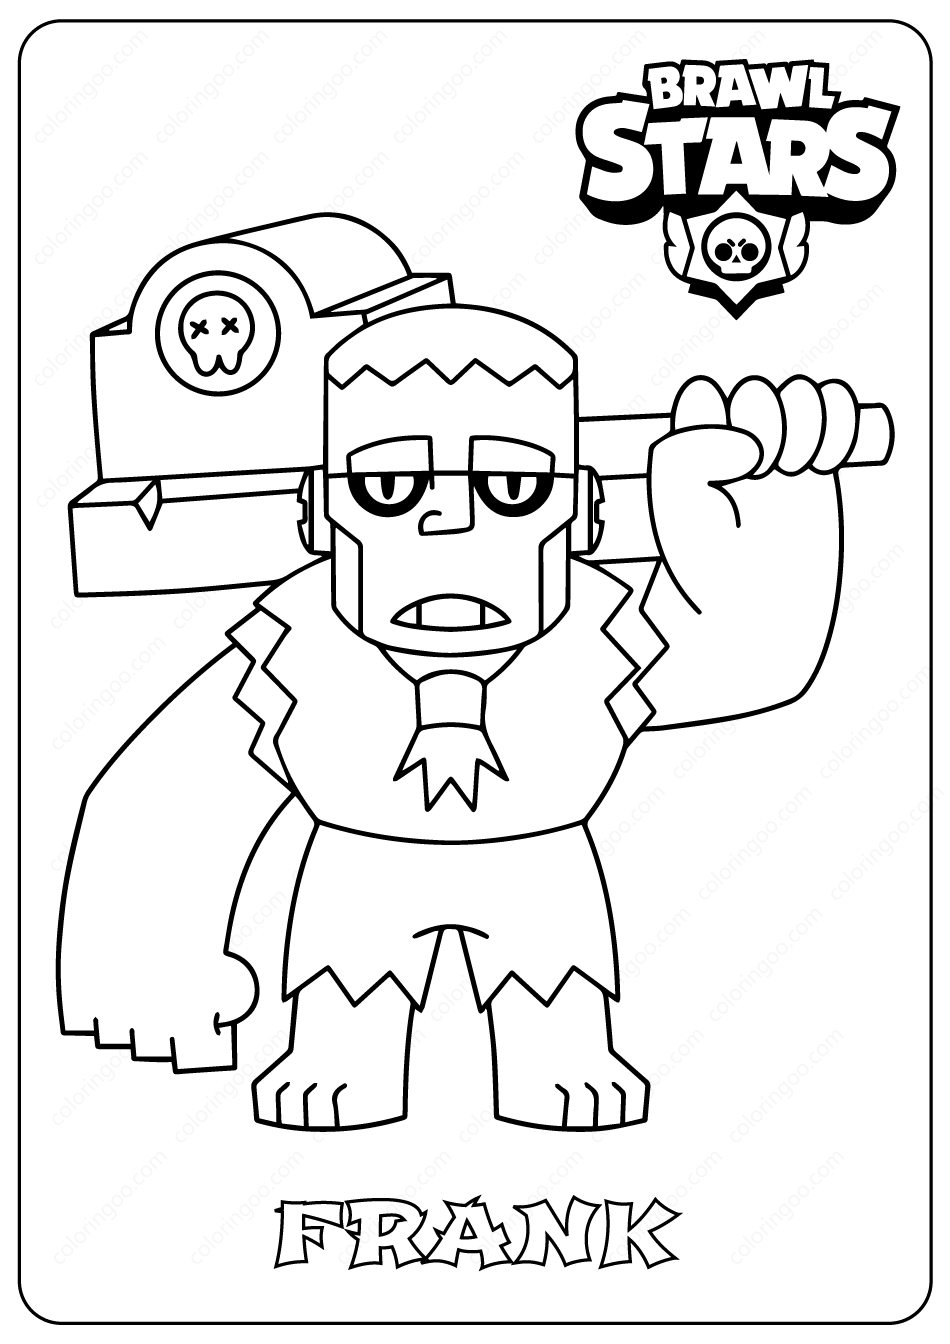 Brawl Stars Frank Pdf Coloring Pages Coloring Pages Star Coloring Pages Brawl